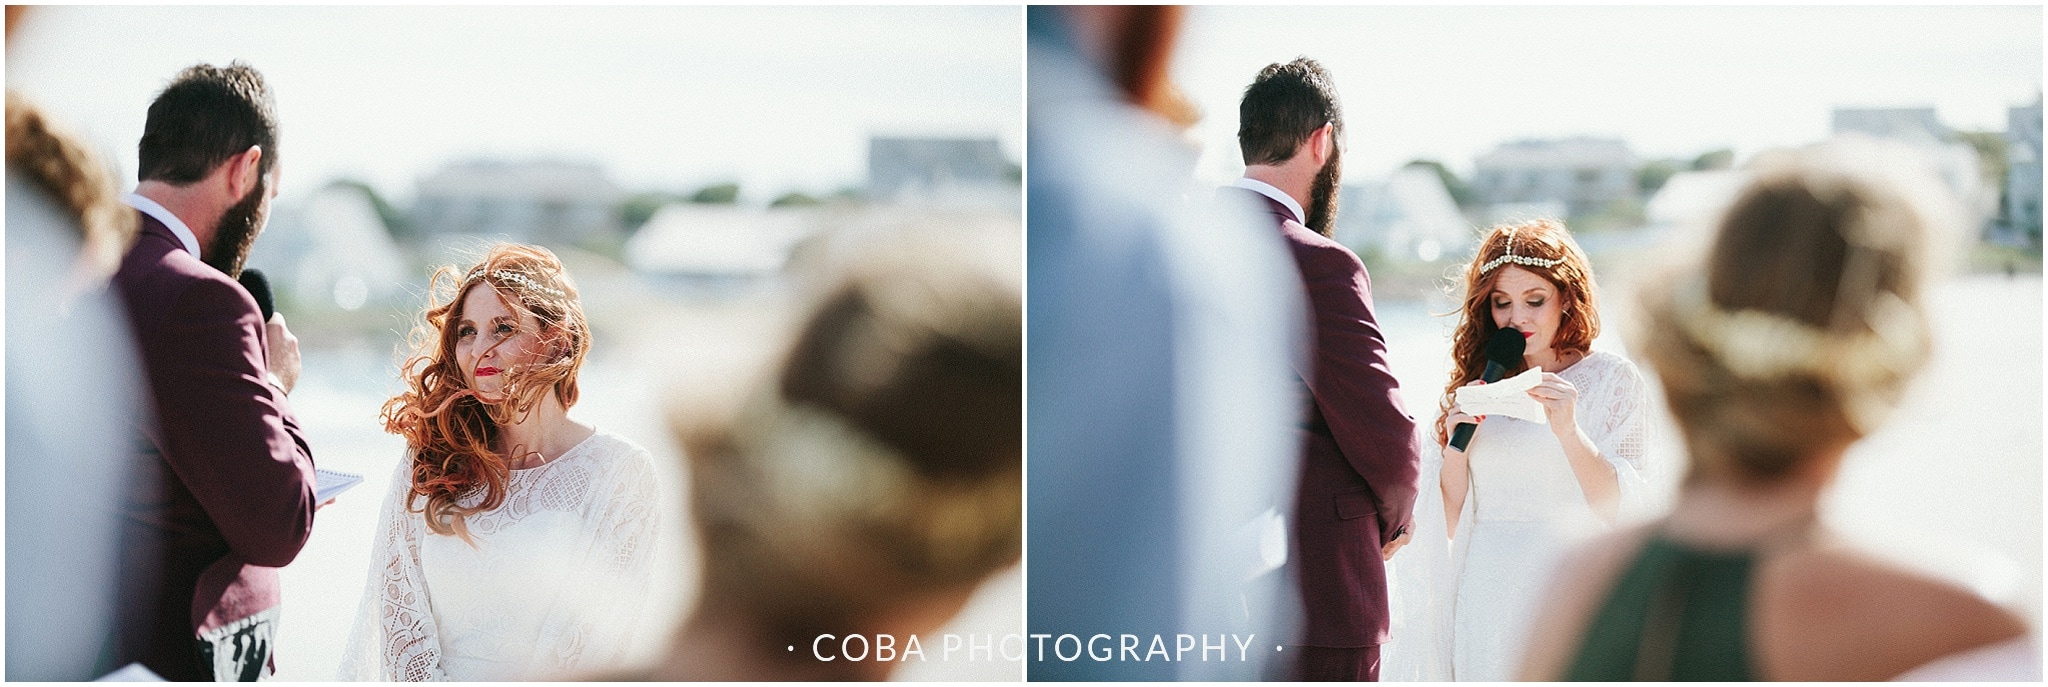 Conrad & Mareli - Boho beach wedding - ceremony (14)